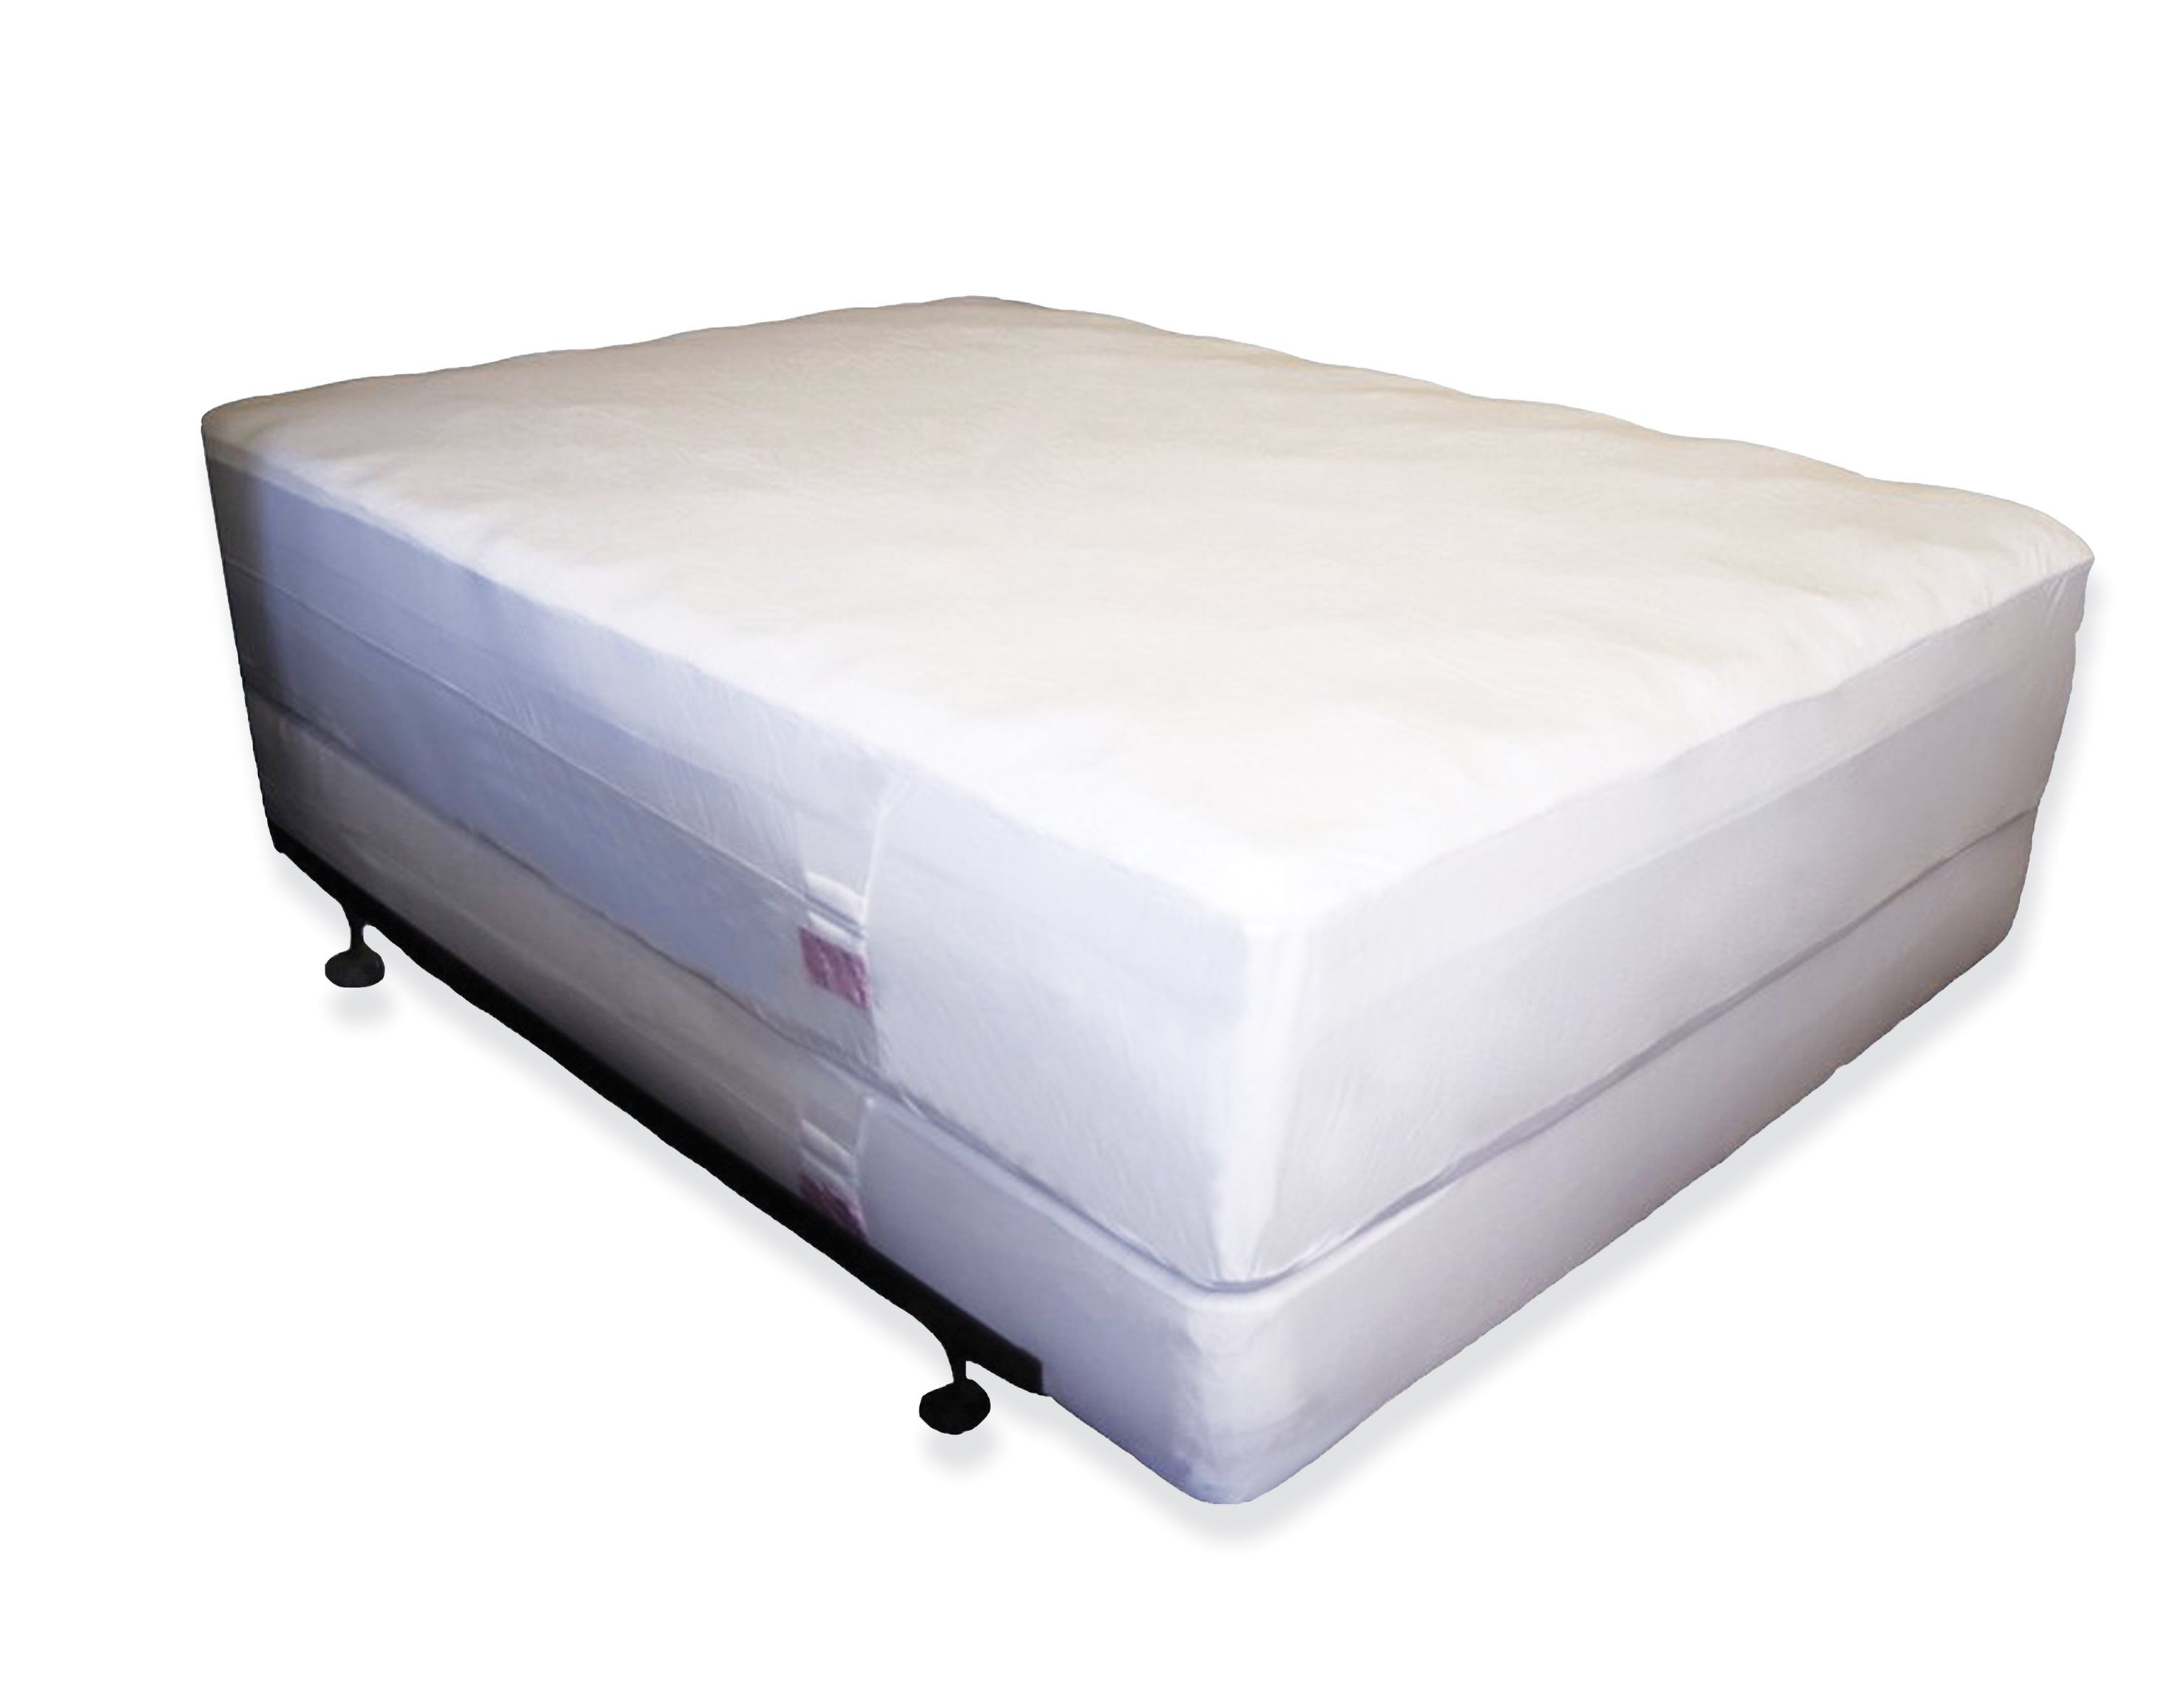 Buglock non waterproof bed bug mattress for Bed bug and waterproof mattress protector